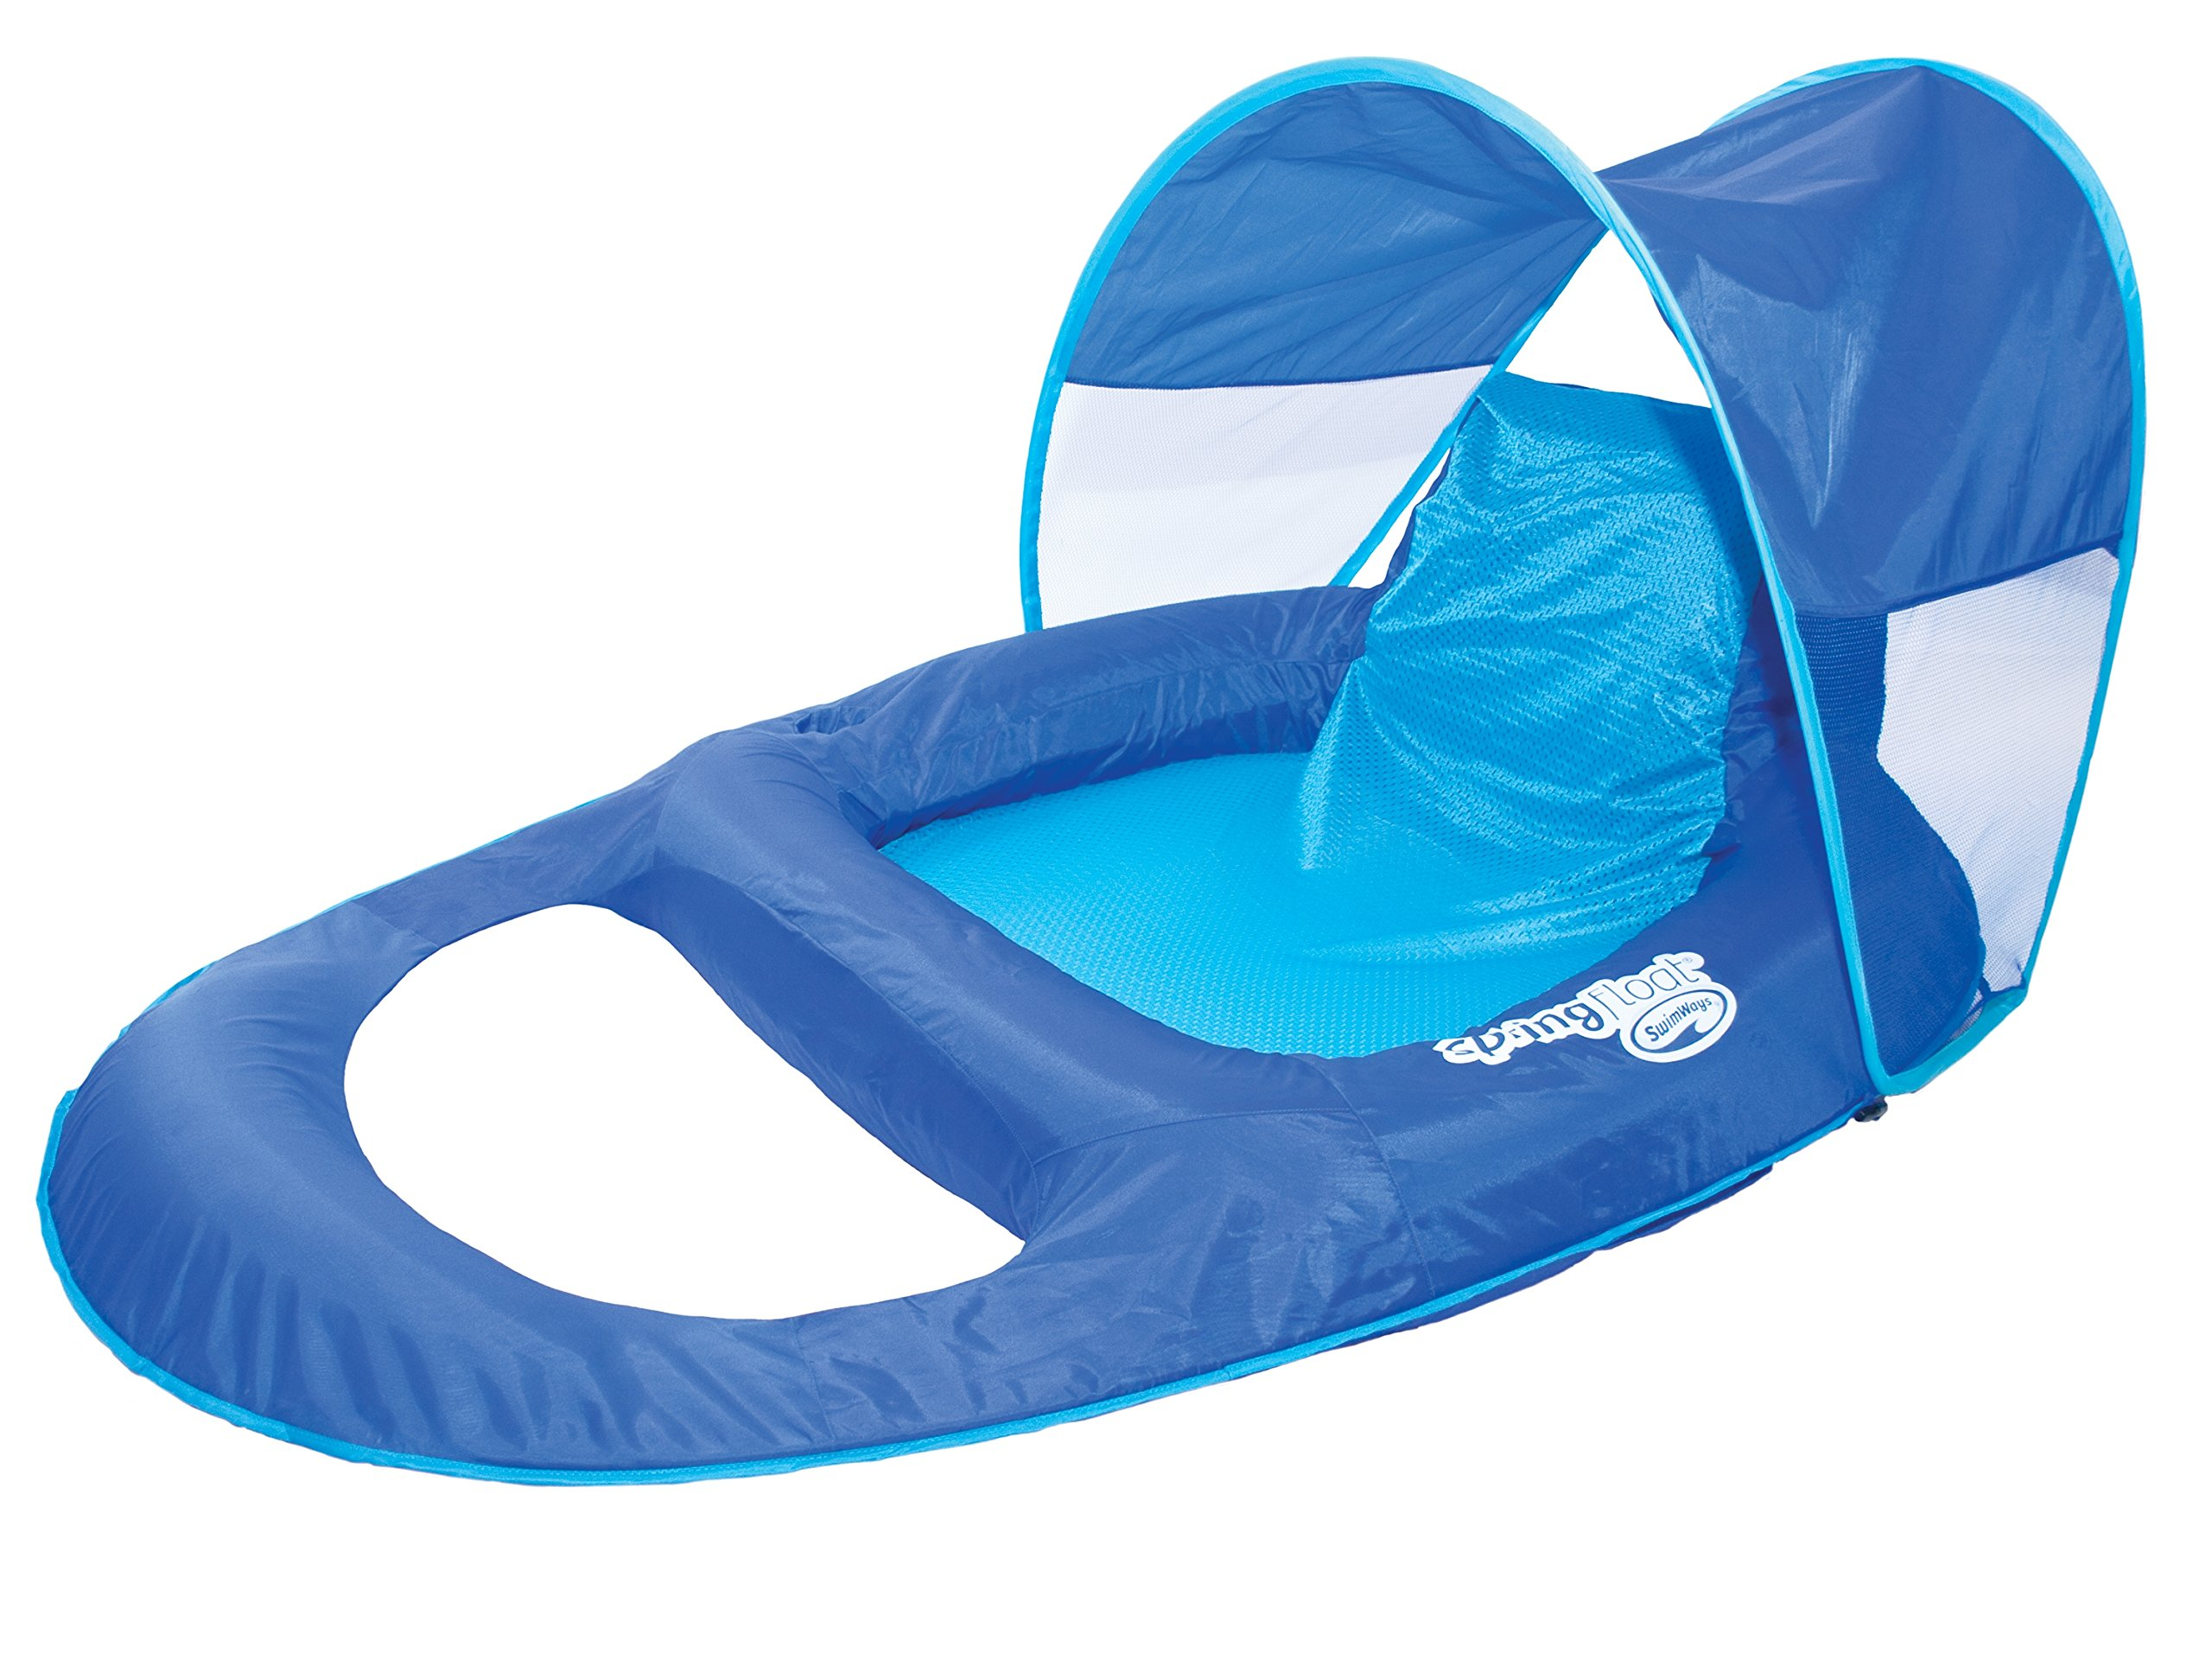 SwimWays Spring Float Recliner with Canopy - Swim Lounger for Pool or Lake by SwimWays